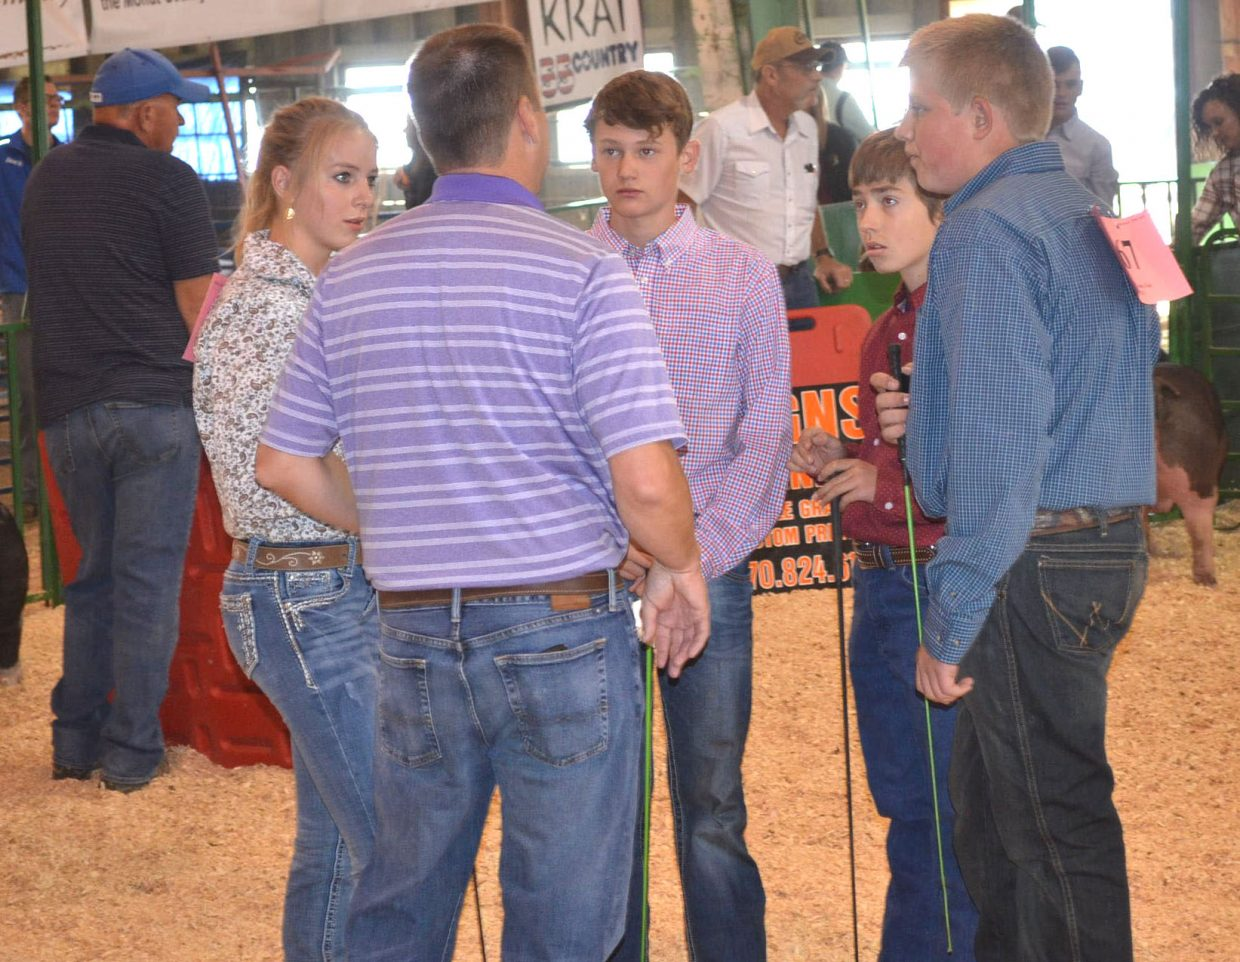 Participants in the intermediate showmanship division of the Moffat County Fair's swine show listen to instructions from Judge Bill Disberger on Friday.